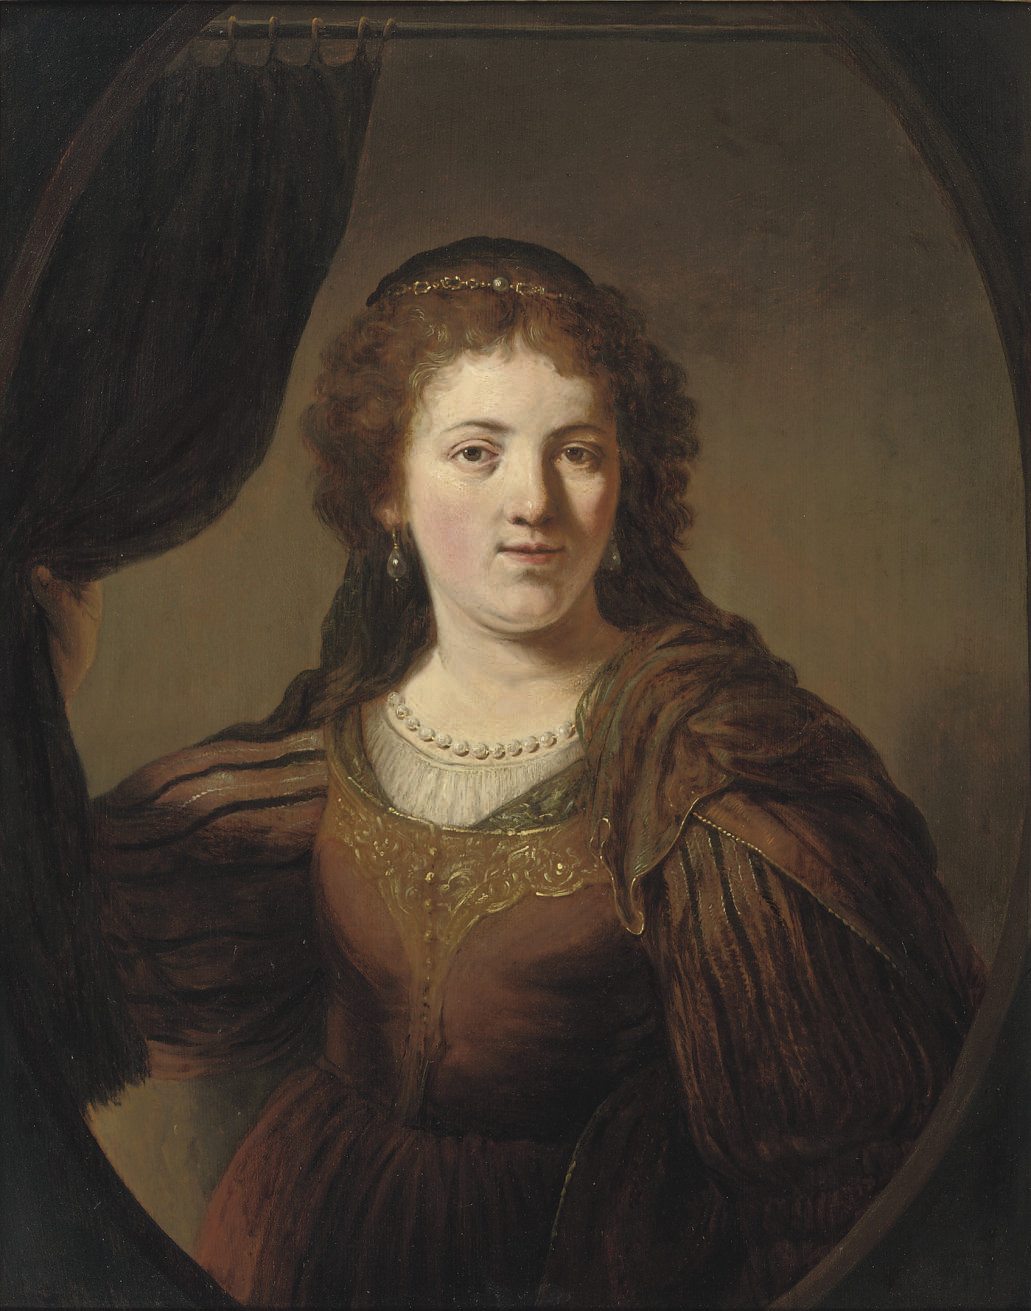 Attributed to Govert Flinck (C